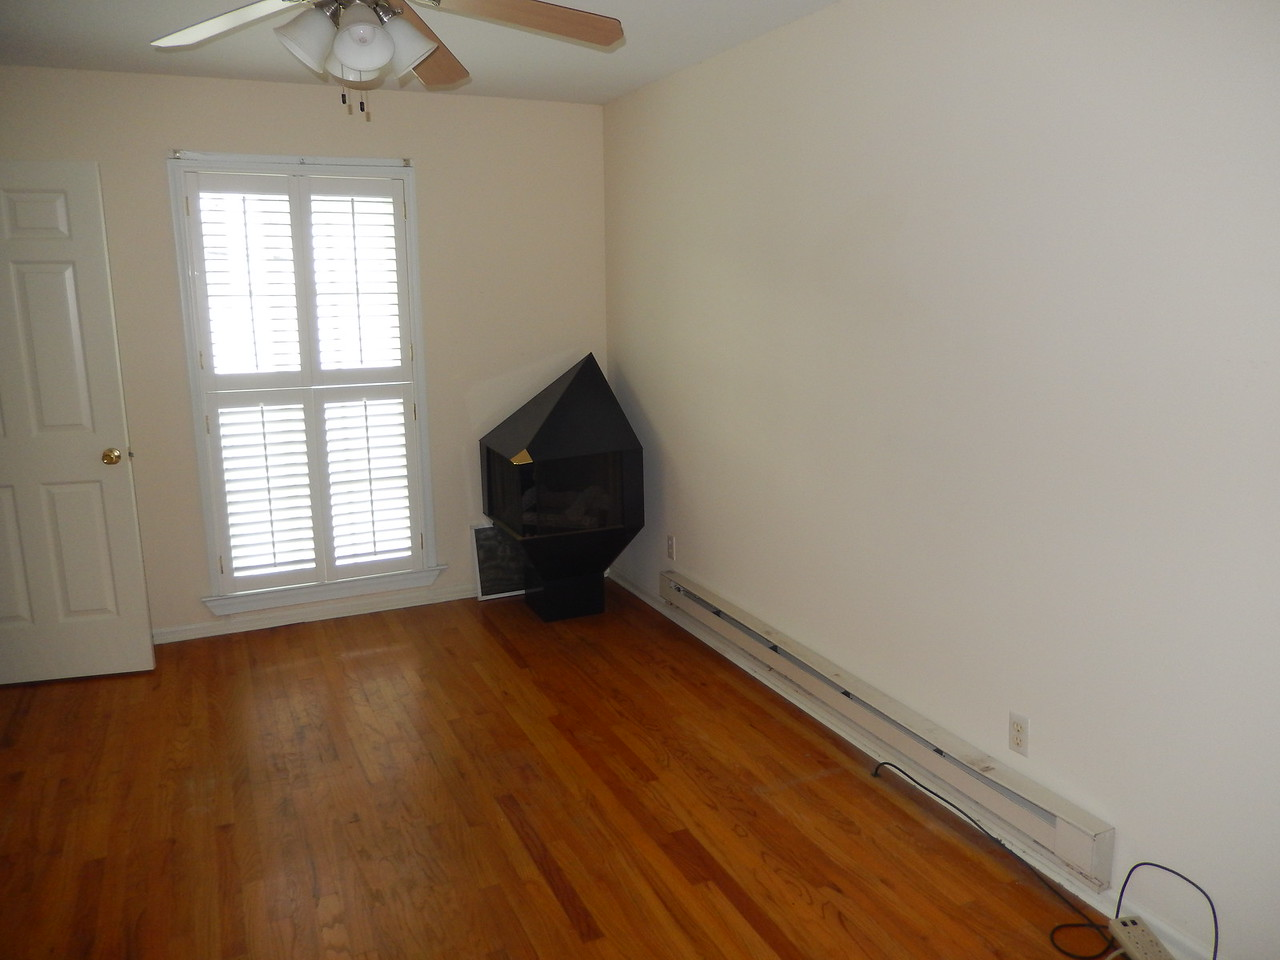 Living area.  Baseboard heating units to be removed.